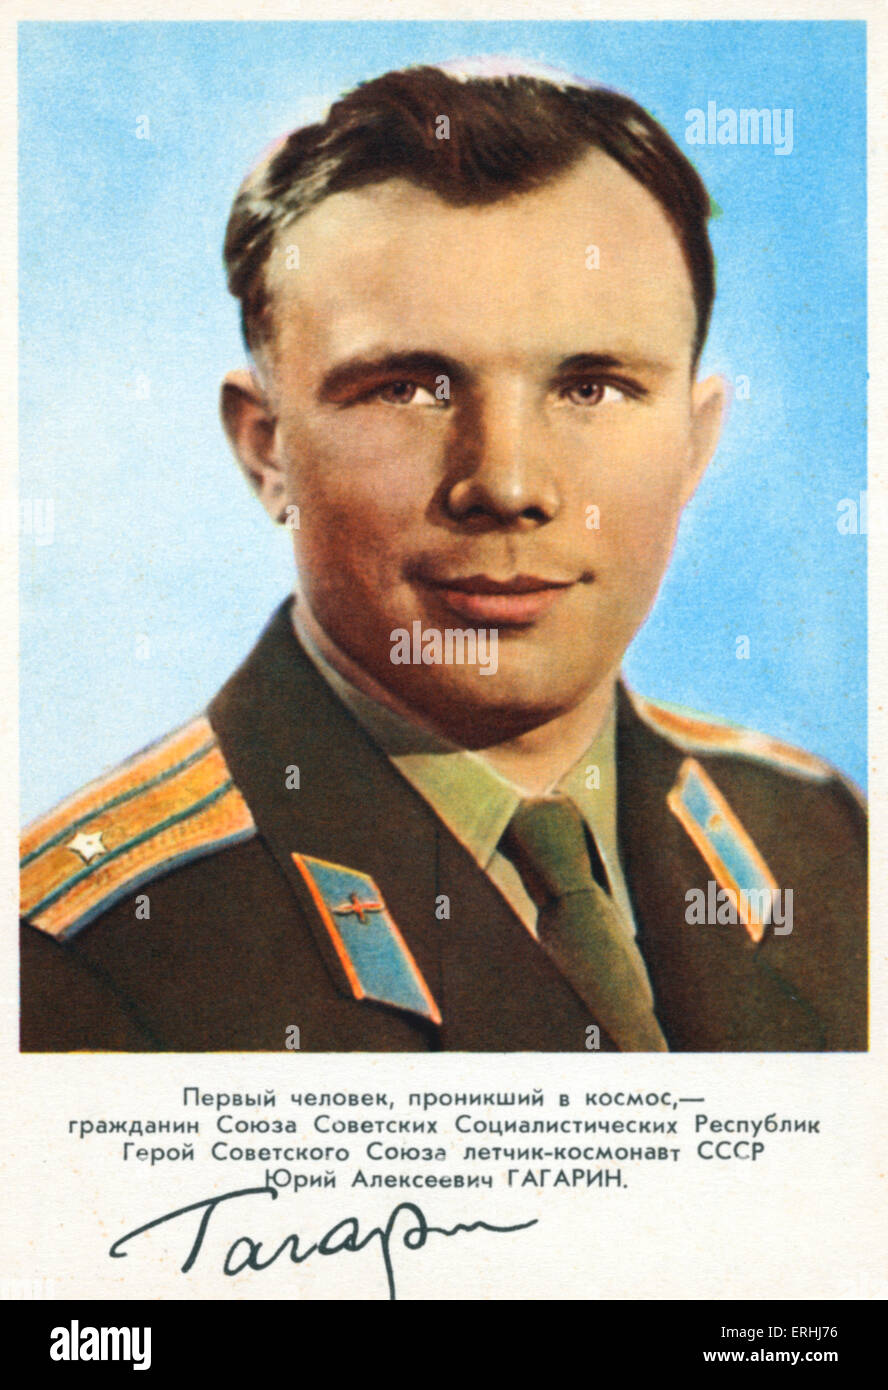 Yuri Gagarin - signed portrait of the Soviet cosmonaut. The first man in space October 4 1957. 9 March 1934 - 27 - Stock Image